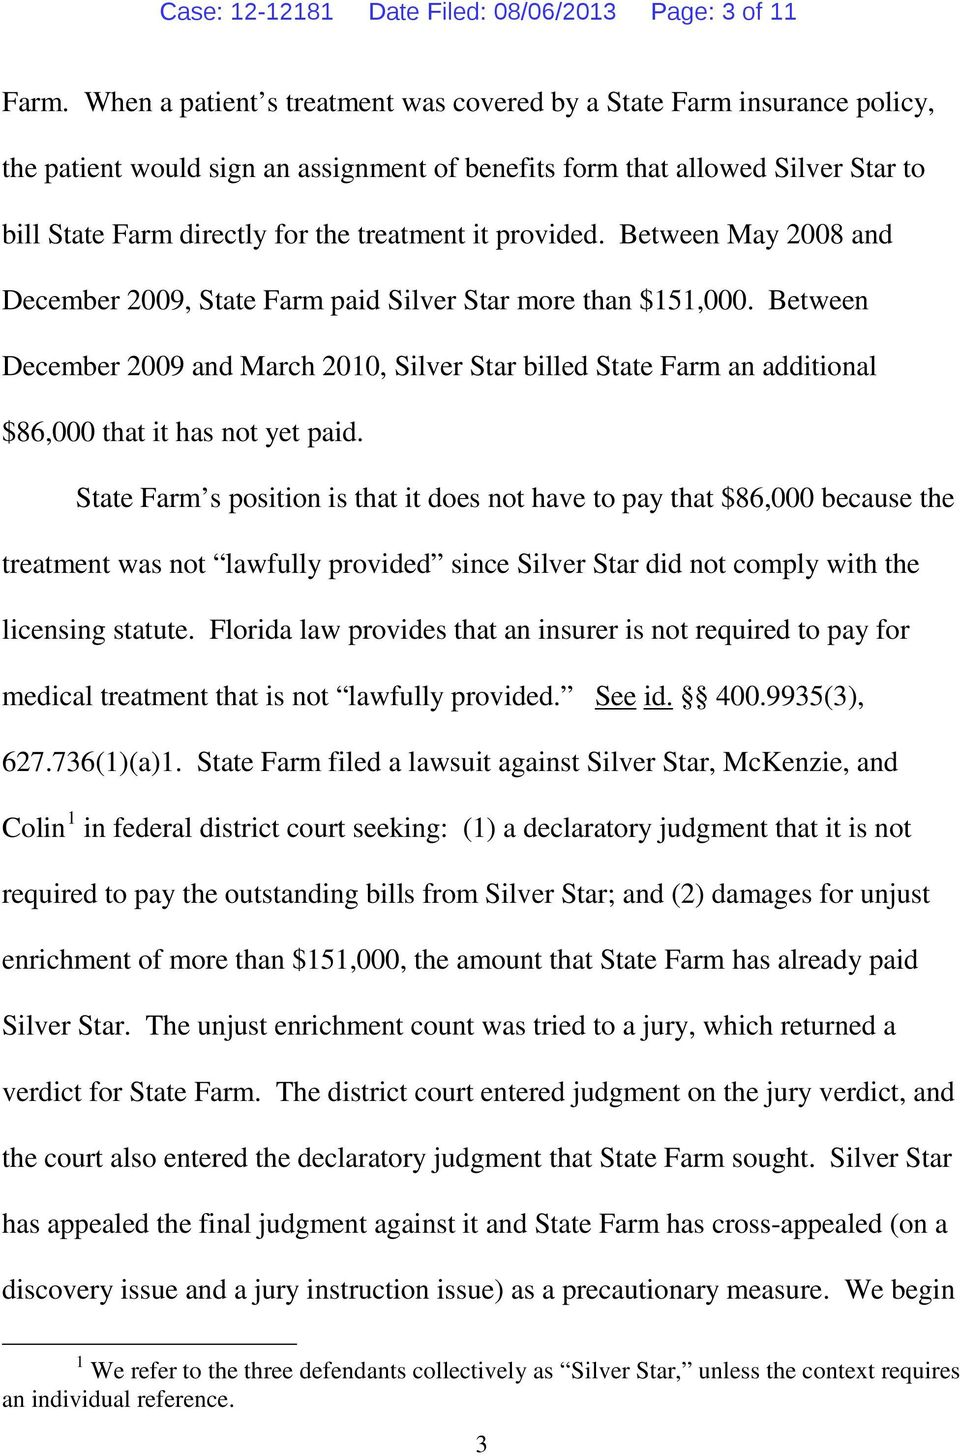 it provided. Between May 2008 and December 2009, State Farm paid Silver Star more than $151,000.